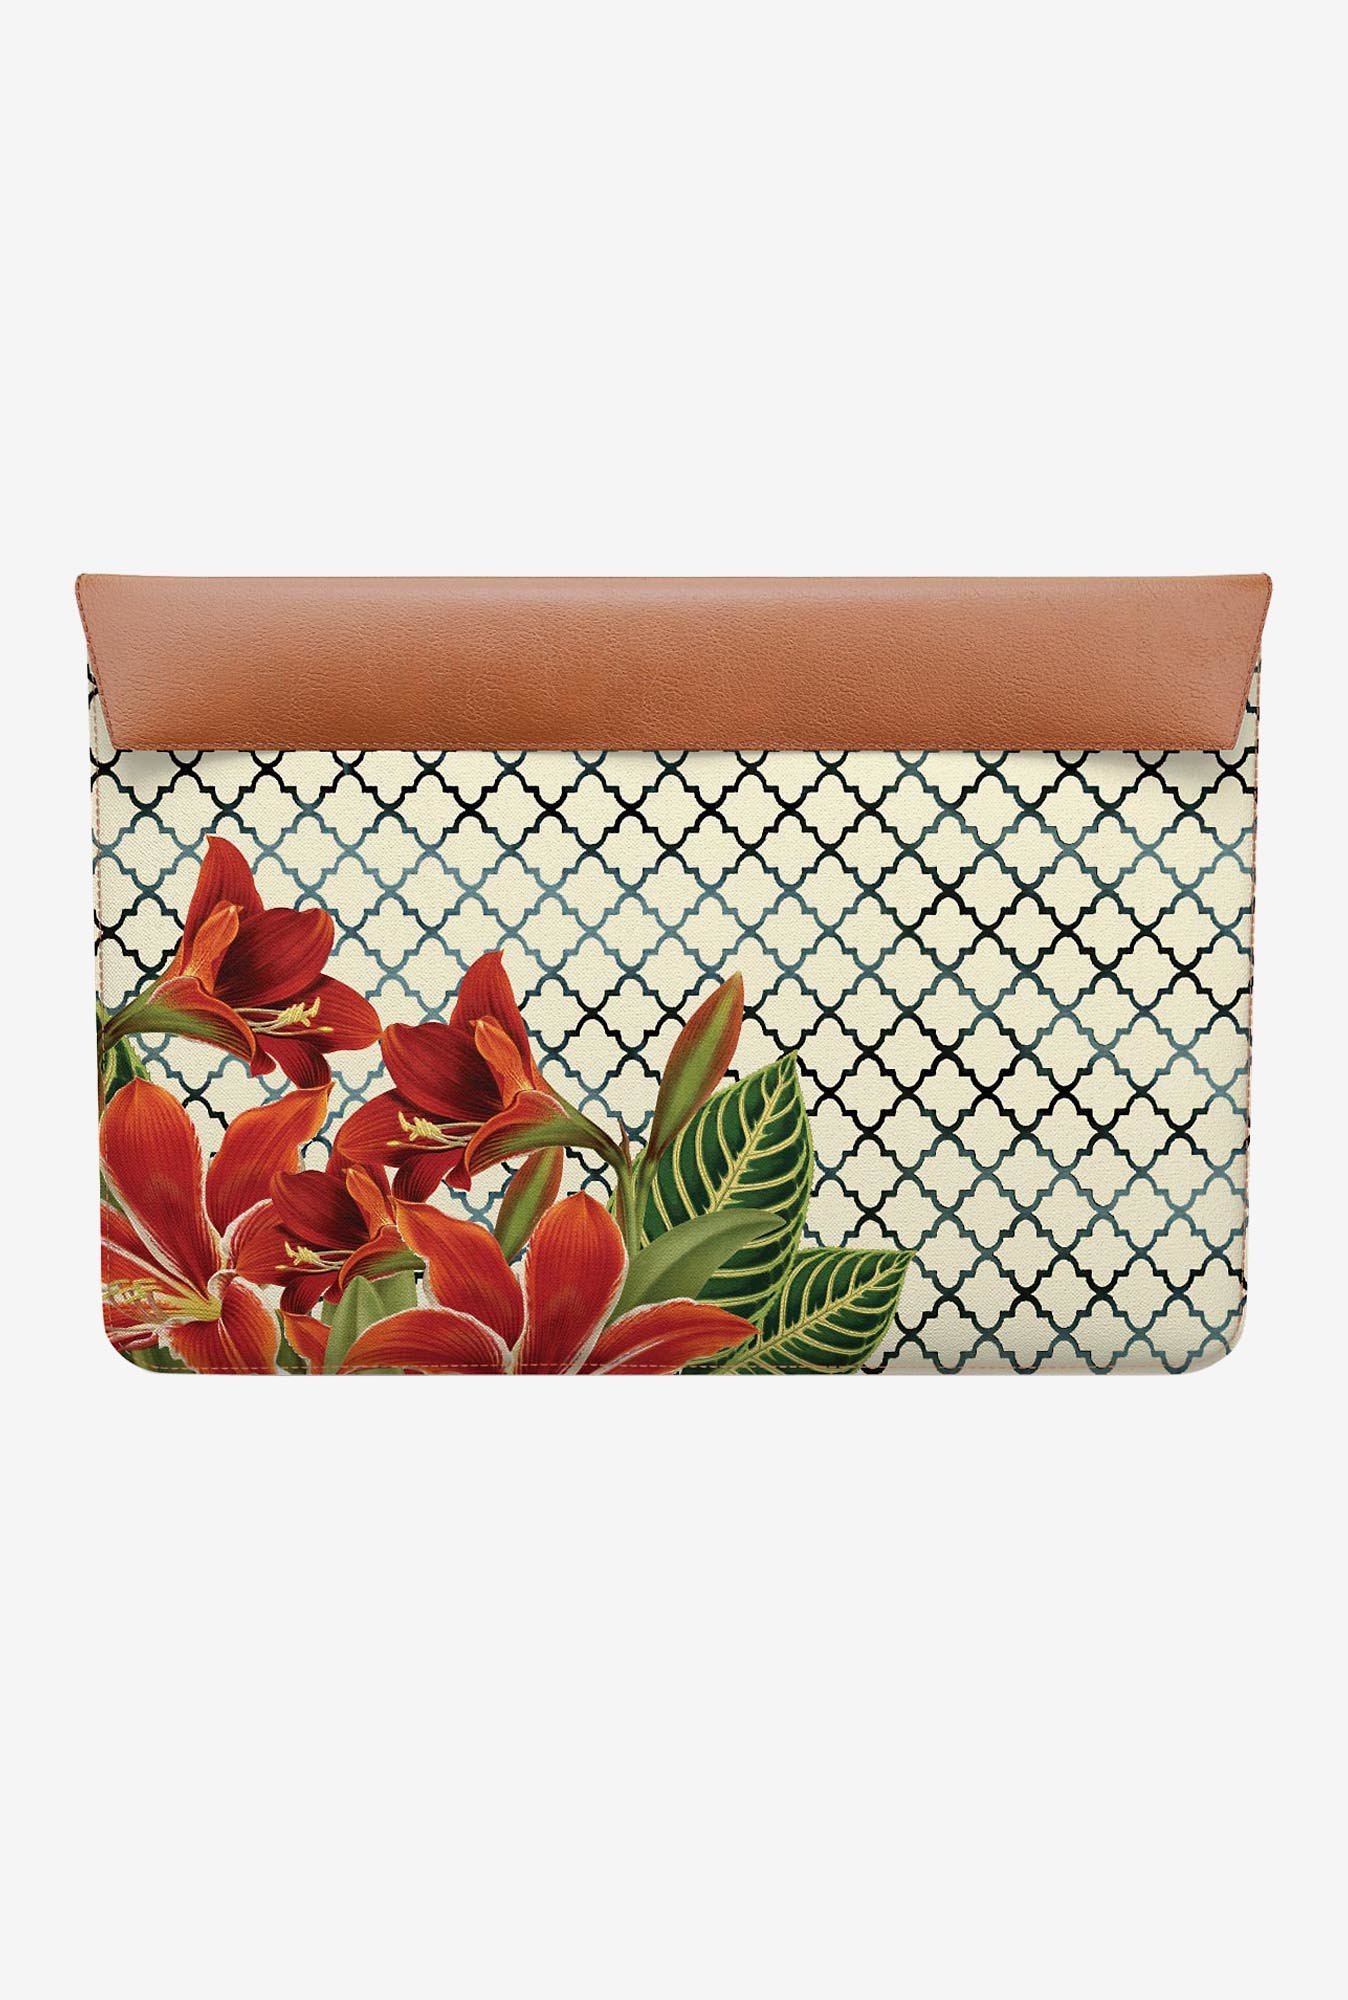 DailyObjects Floral Pattern MacBook Pro 13 Envelope Sleeve